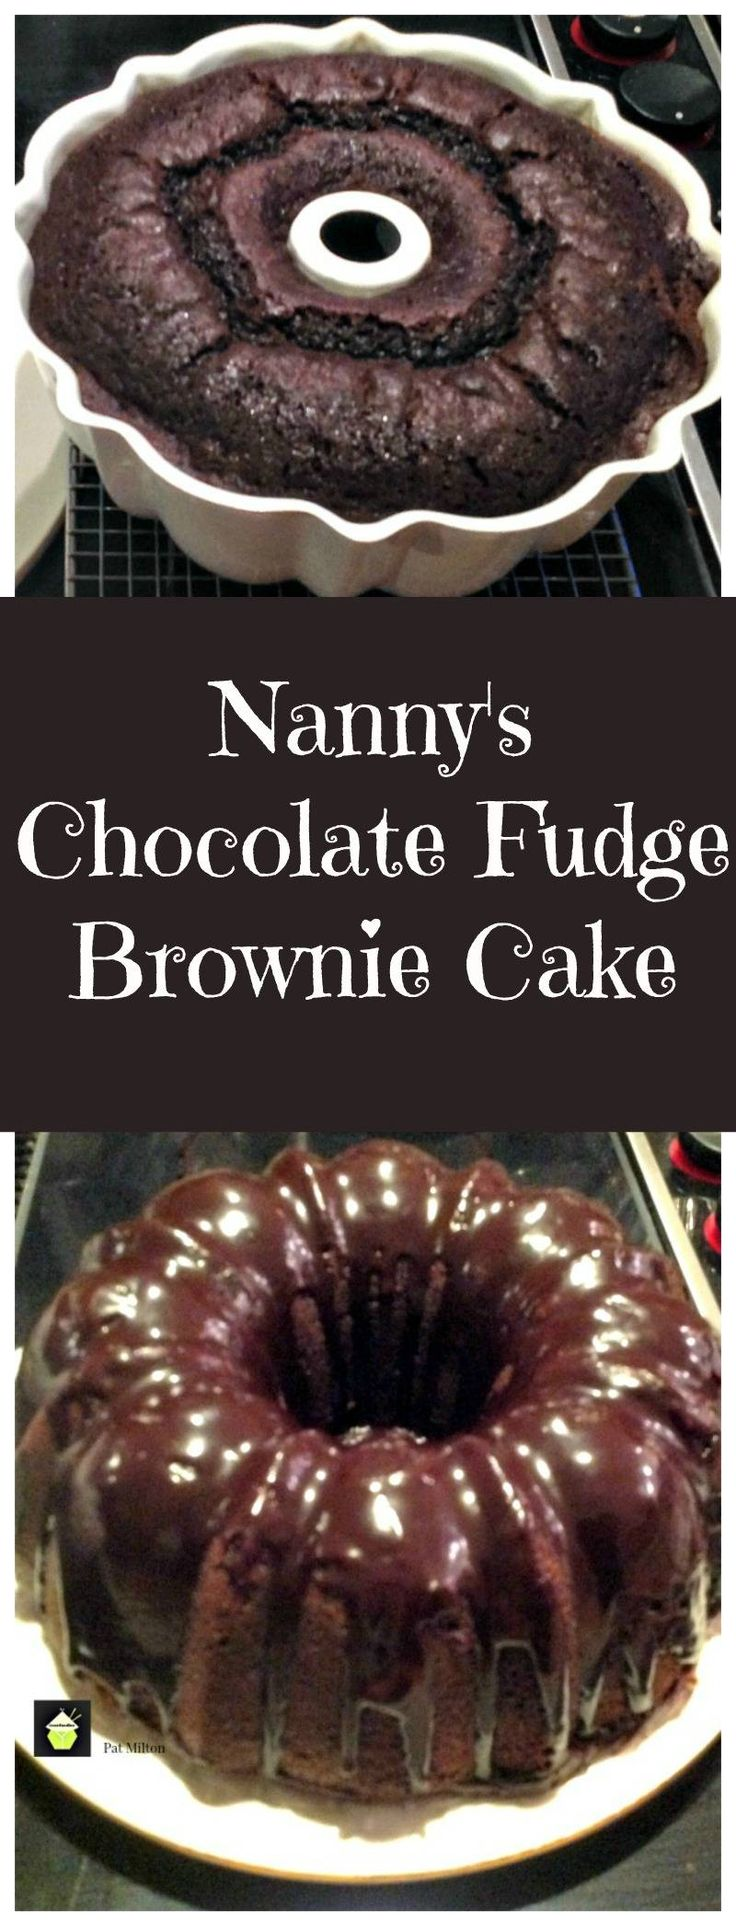 Nanny's Chocolate Fudge Brownie Cake is a keeper recipe! Easy to make and perfect for chocolate lover's.   Lovefoodies.com